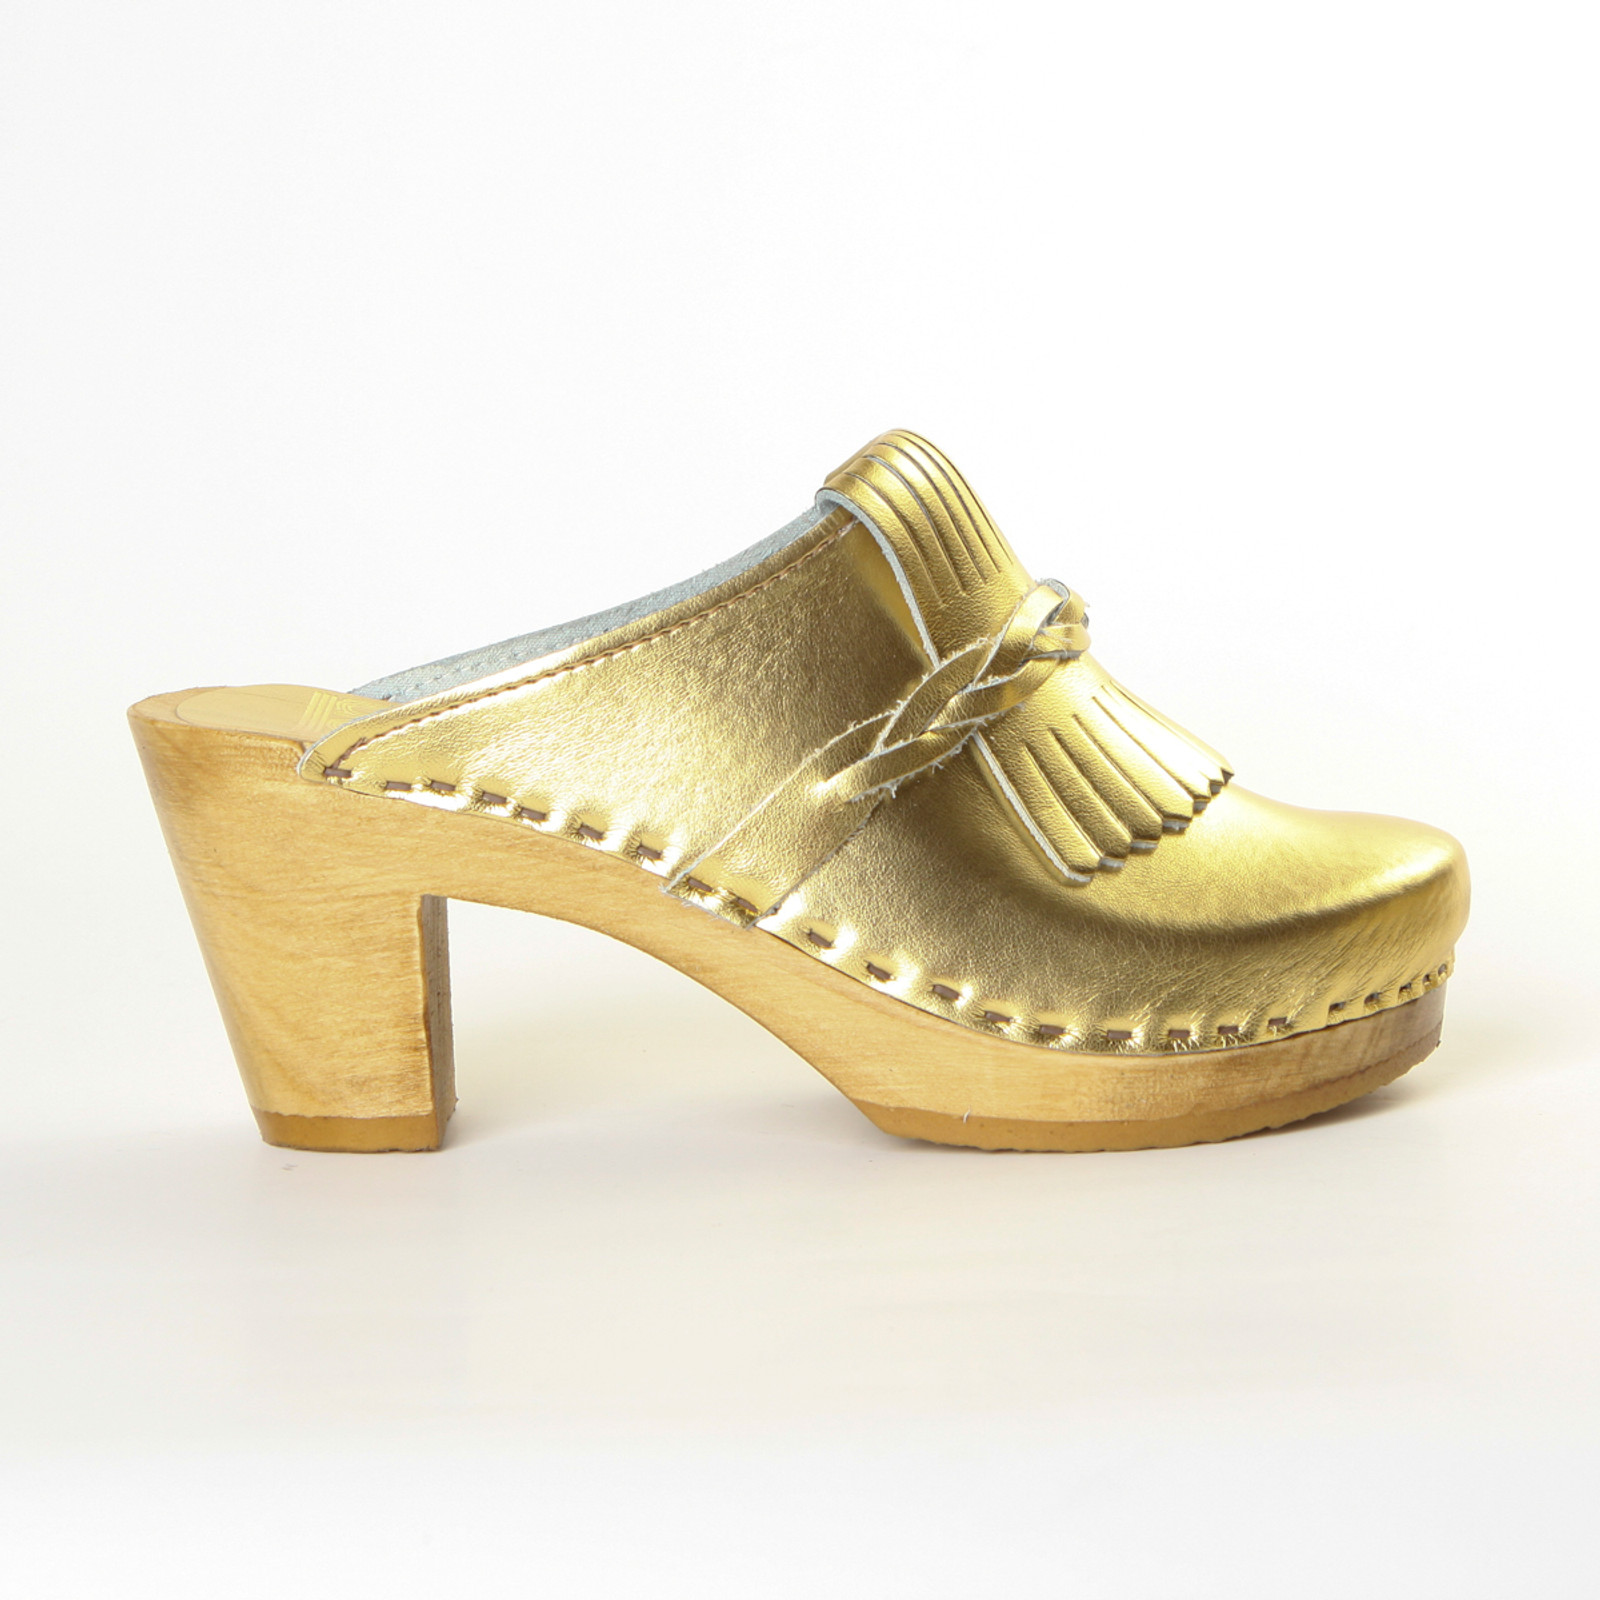 Gold Metallic Leather with Brown Base